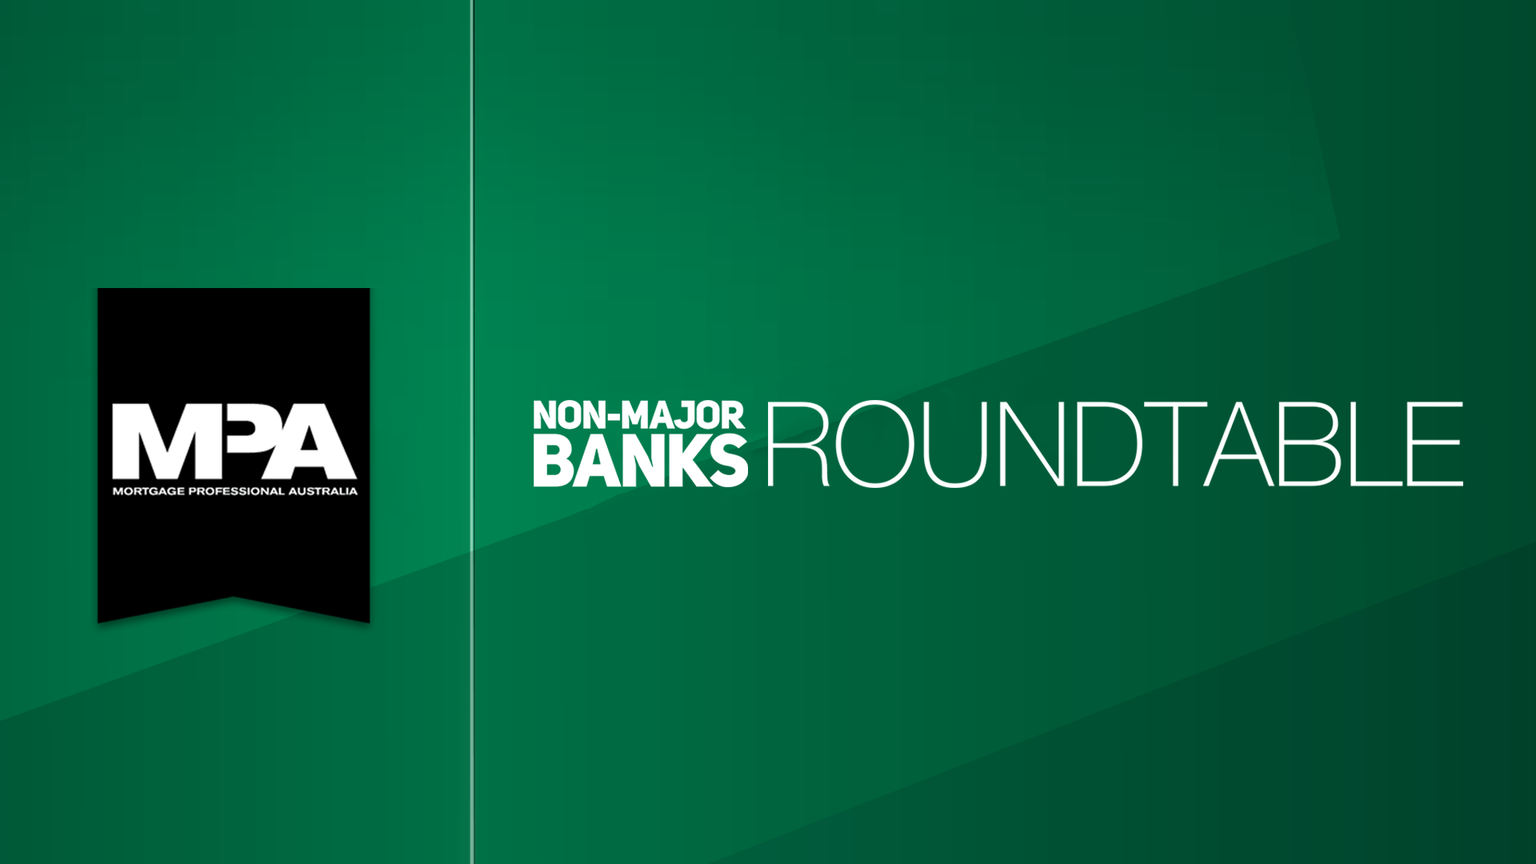 MPA Non-Major Banks Roundtable 2018